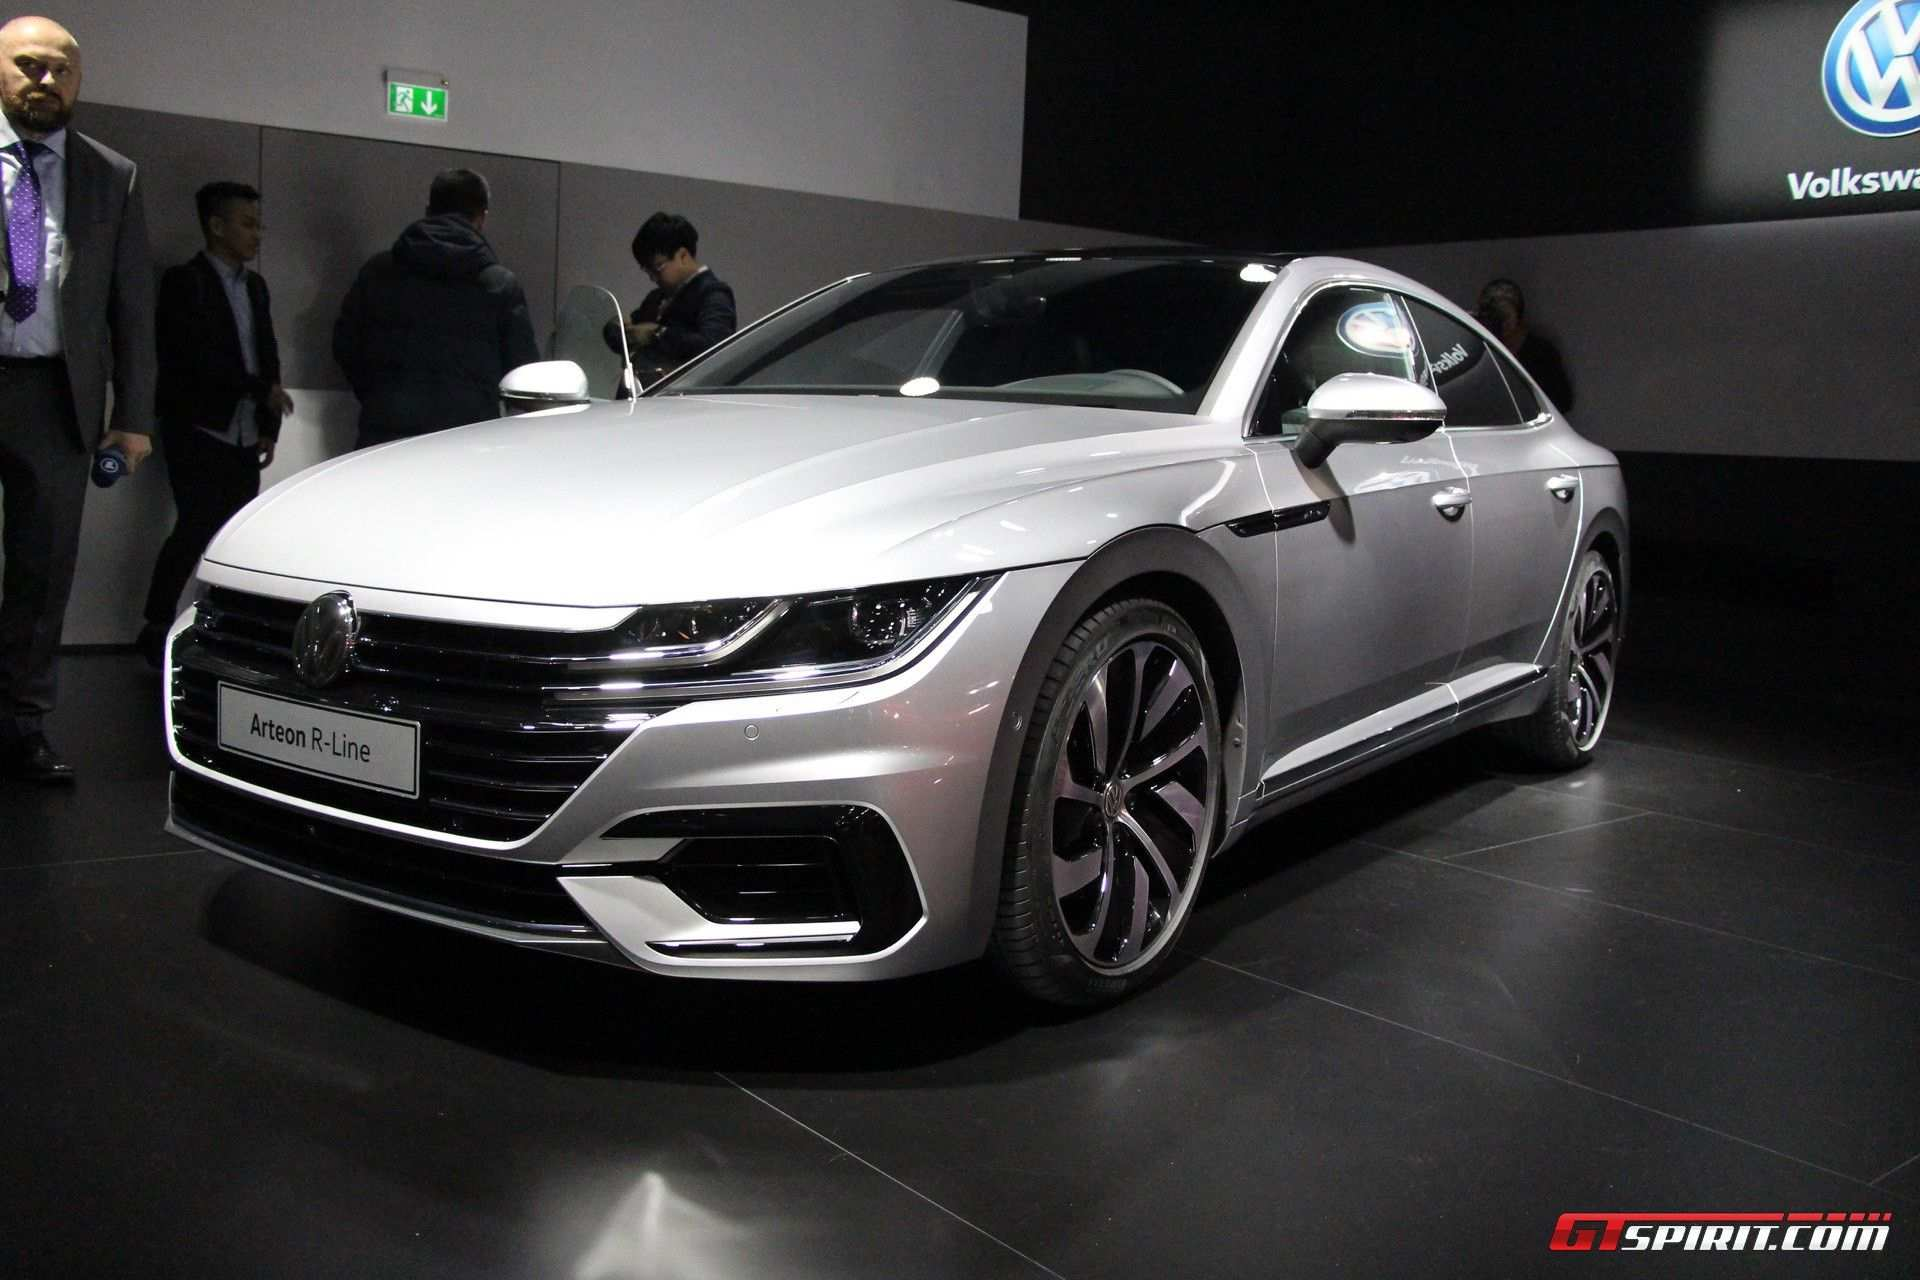 59 The 2020 Volkswagen Arteon R Line Reviews by 2020 Volkswagen Arteon R Line